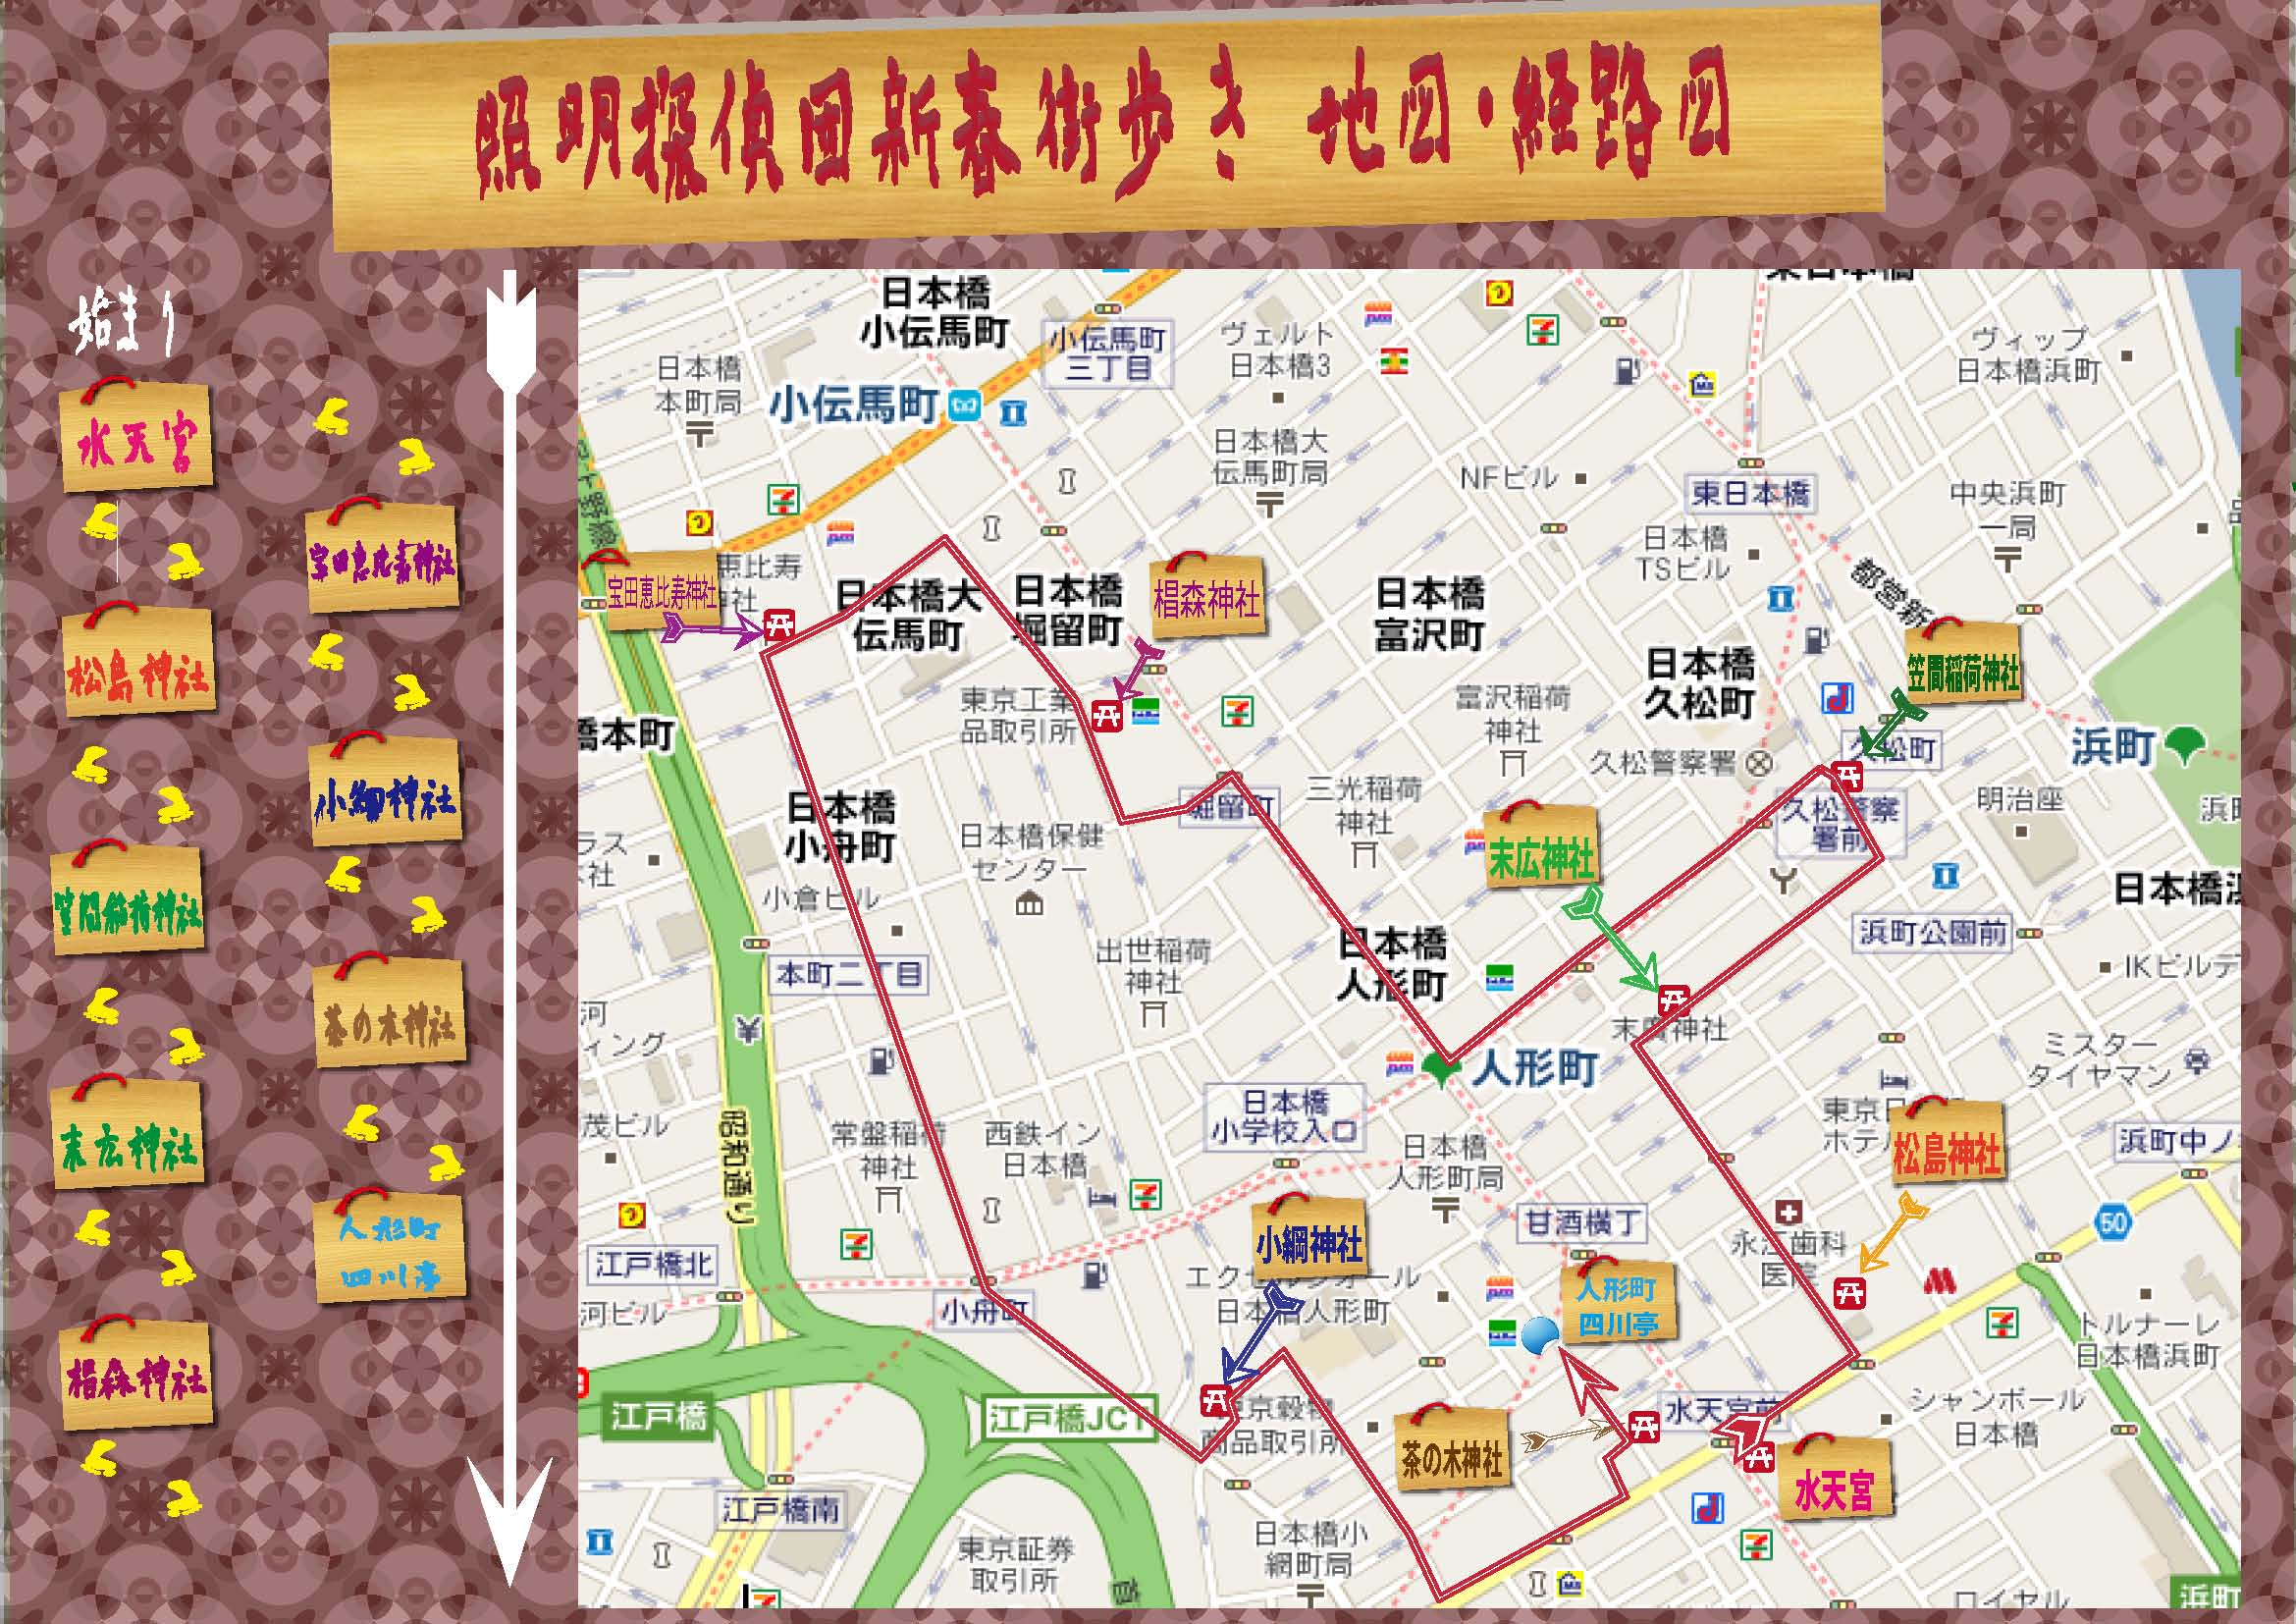 The Seven Gods of Good Fortune City Walk Route